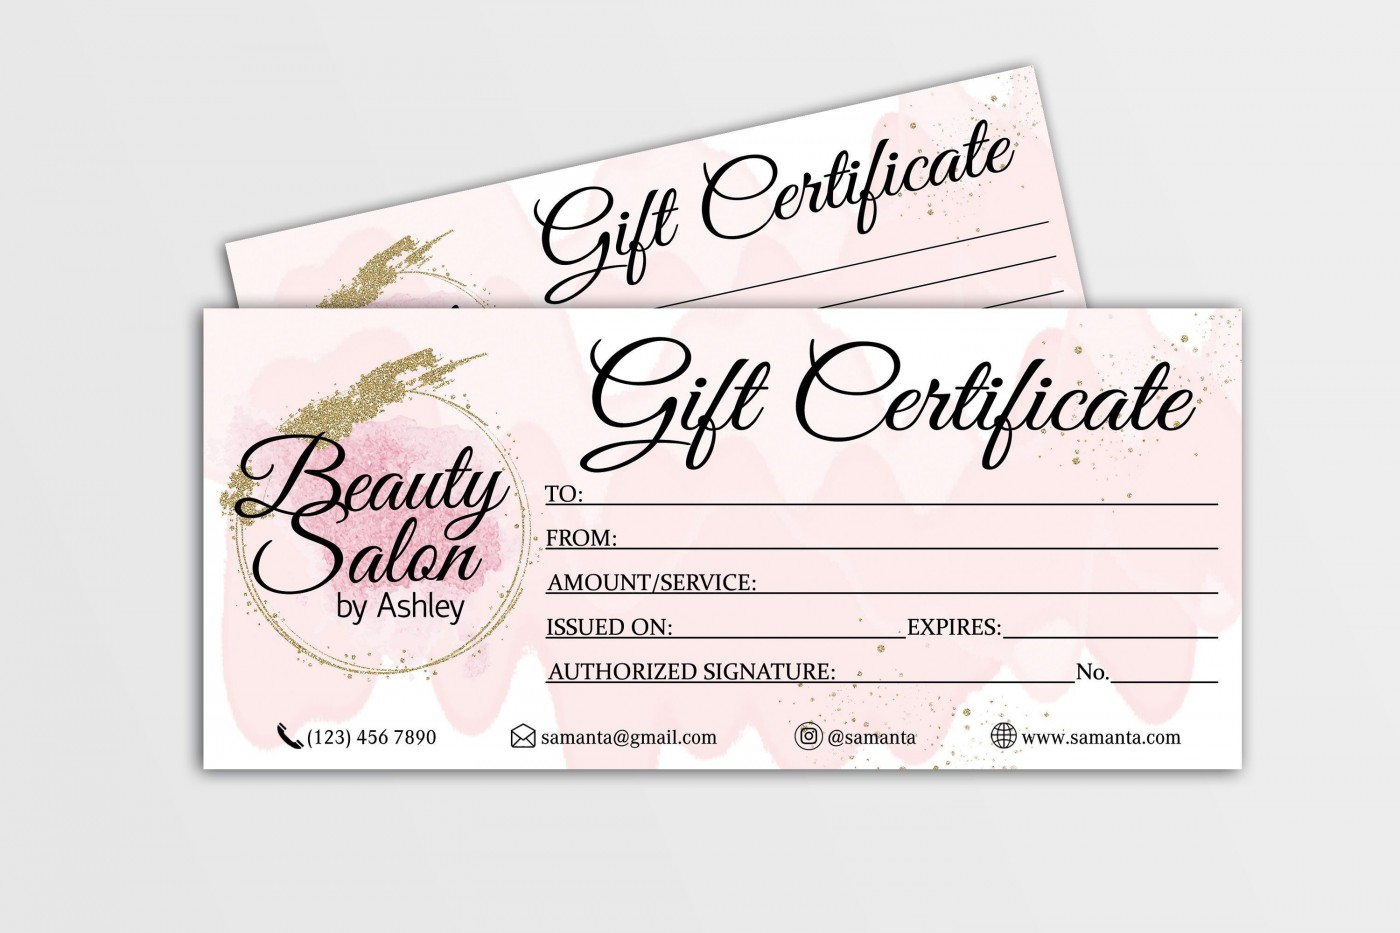 004 Fascinating Salon Gift Certificate Template Design 1400